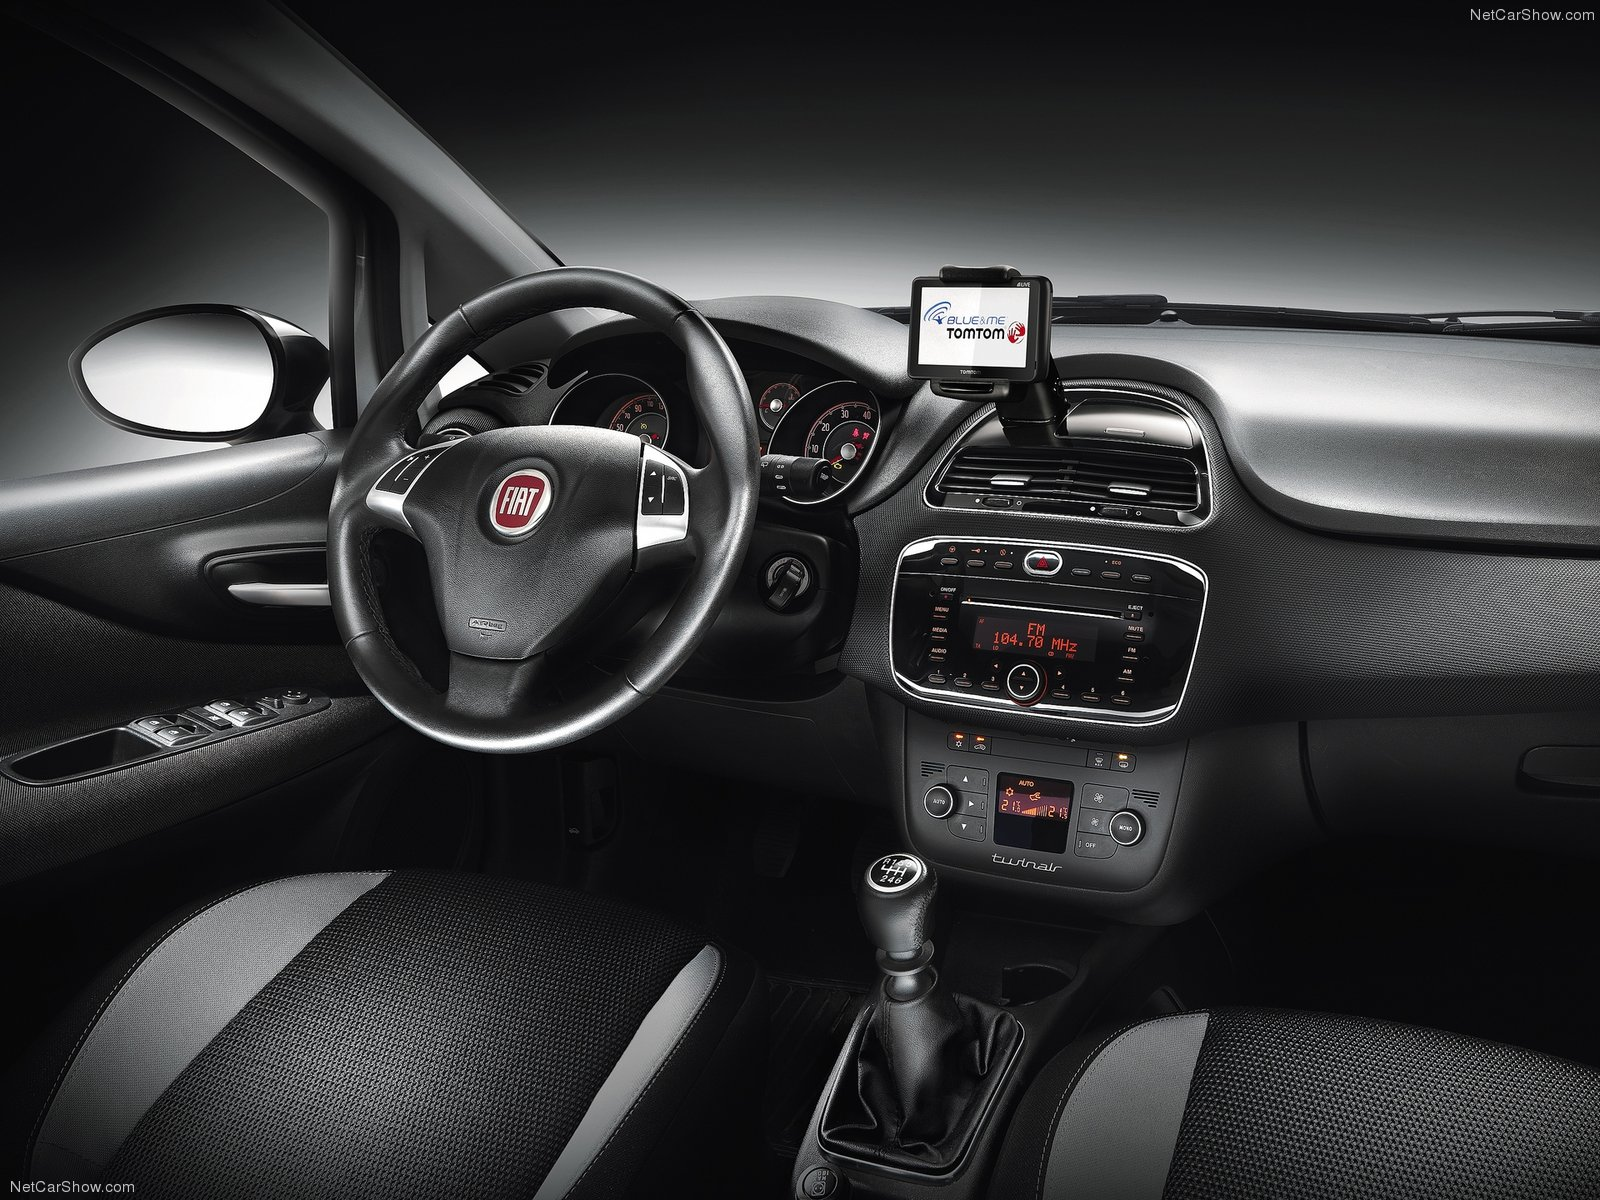 My Perfect Fiat Punto Evo 3dtuning Probably The Best Car Wiring Diagram 3 Door 2010